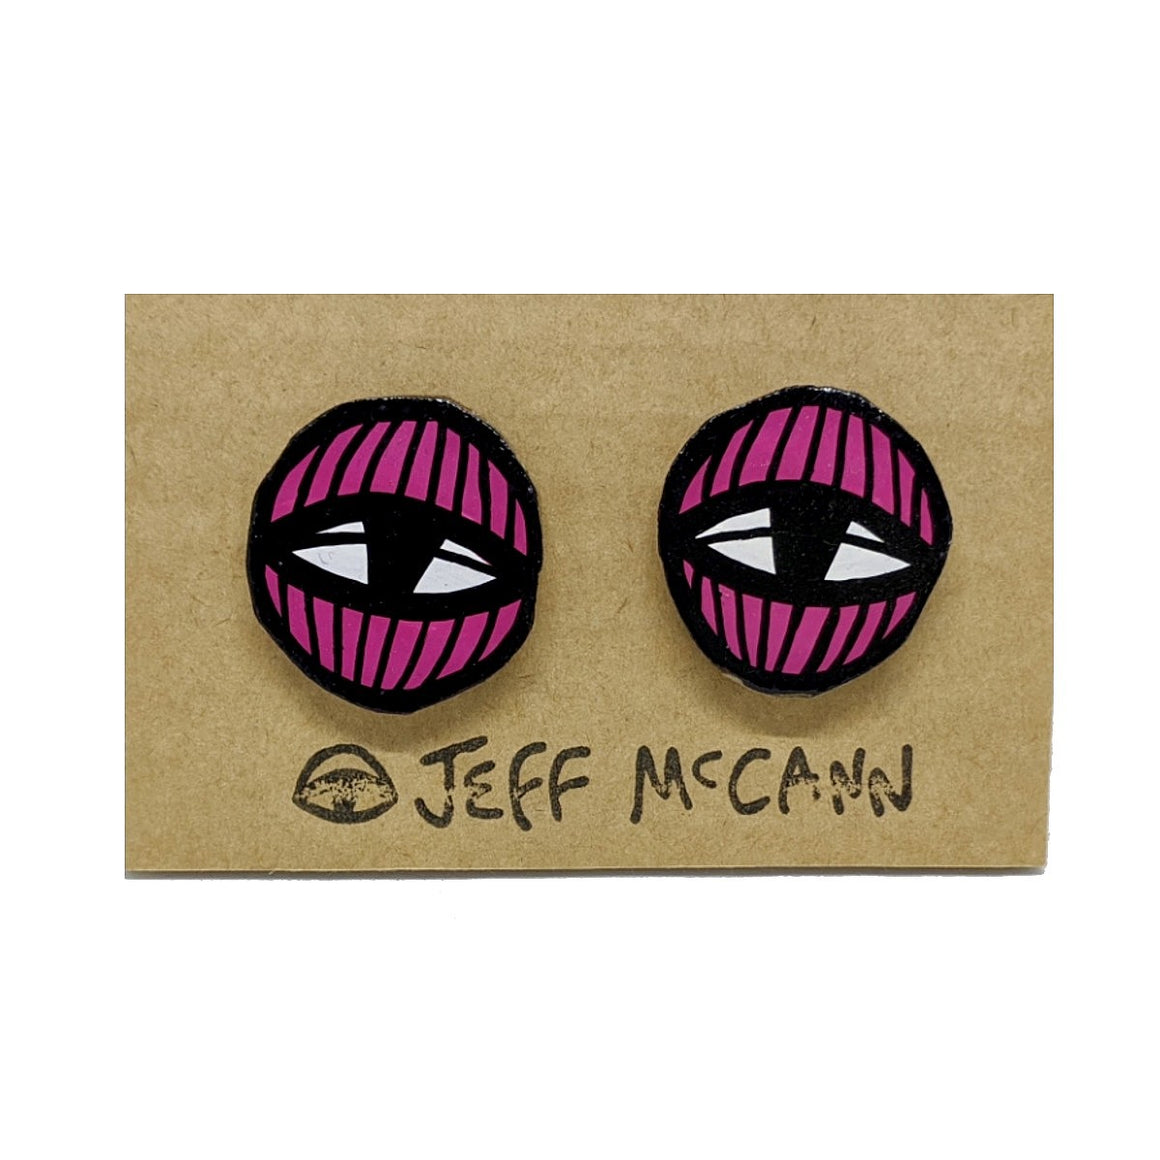 A Pair of stud Earrings made of hand painted cardboard. A geometric design in the shape of two eyes in pink and white.